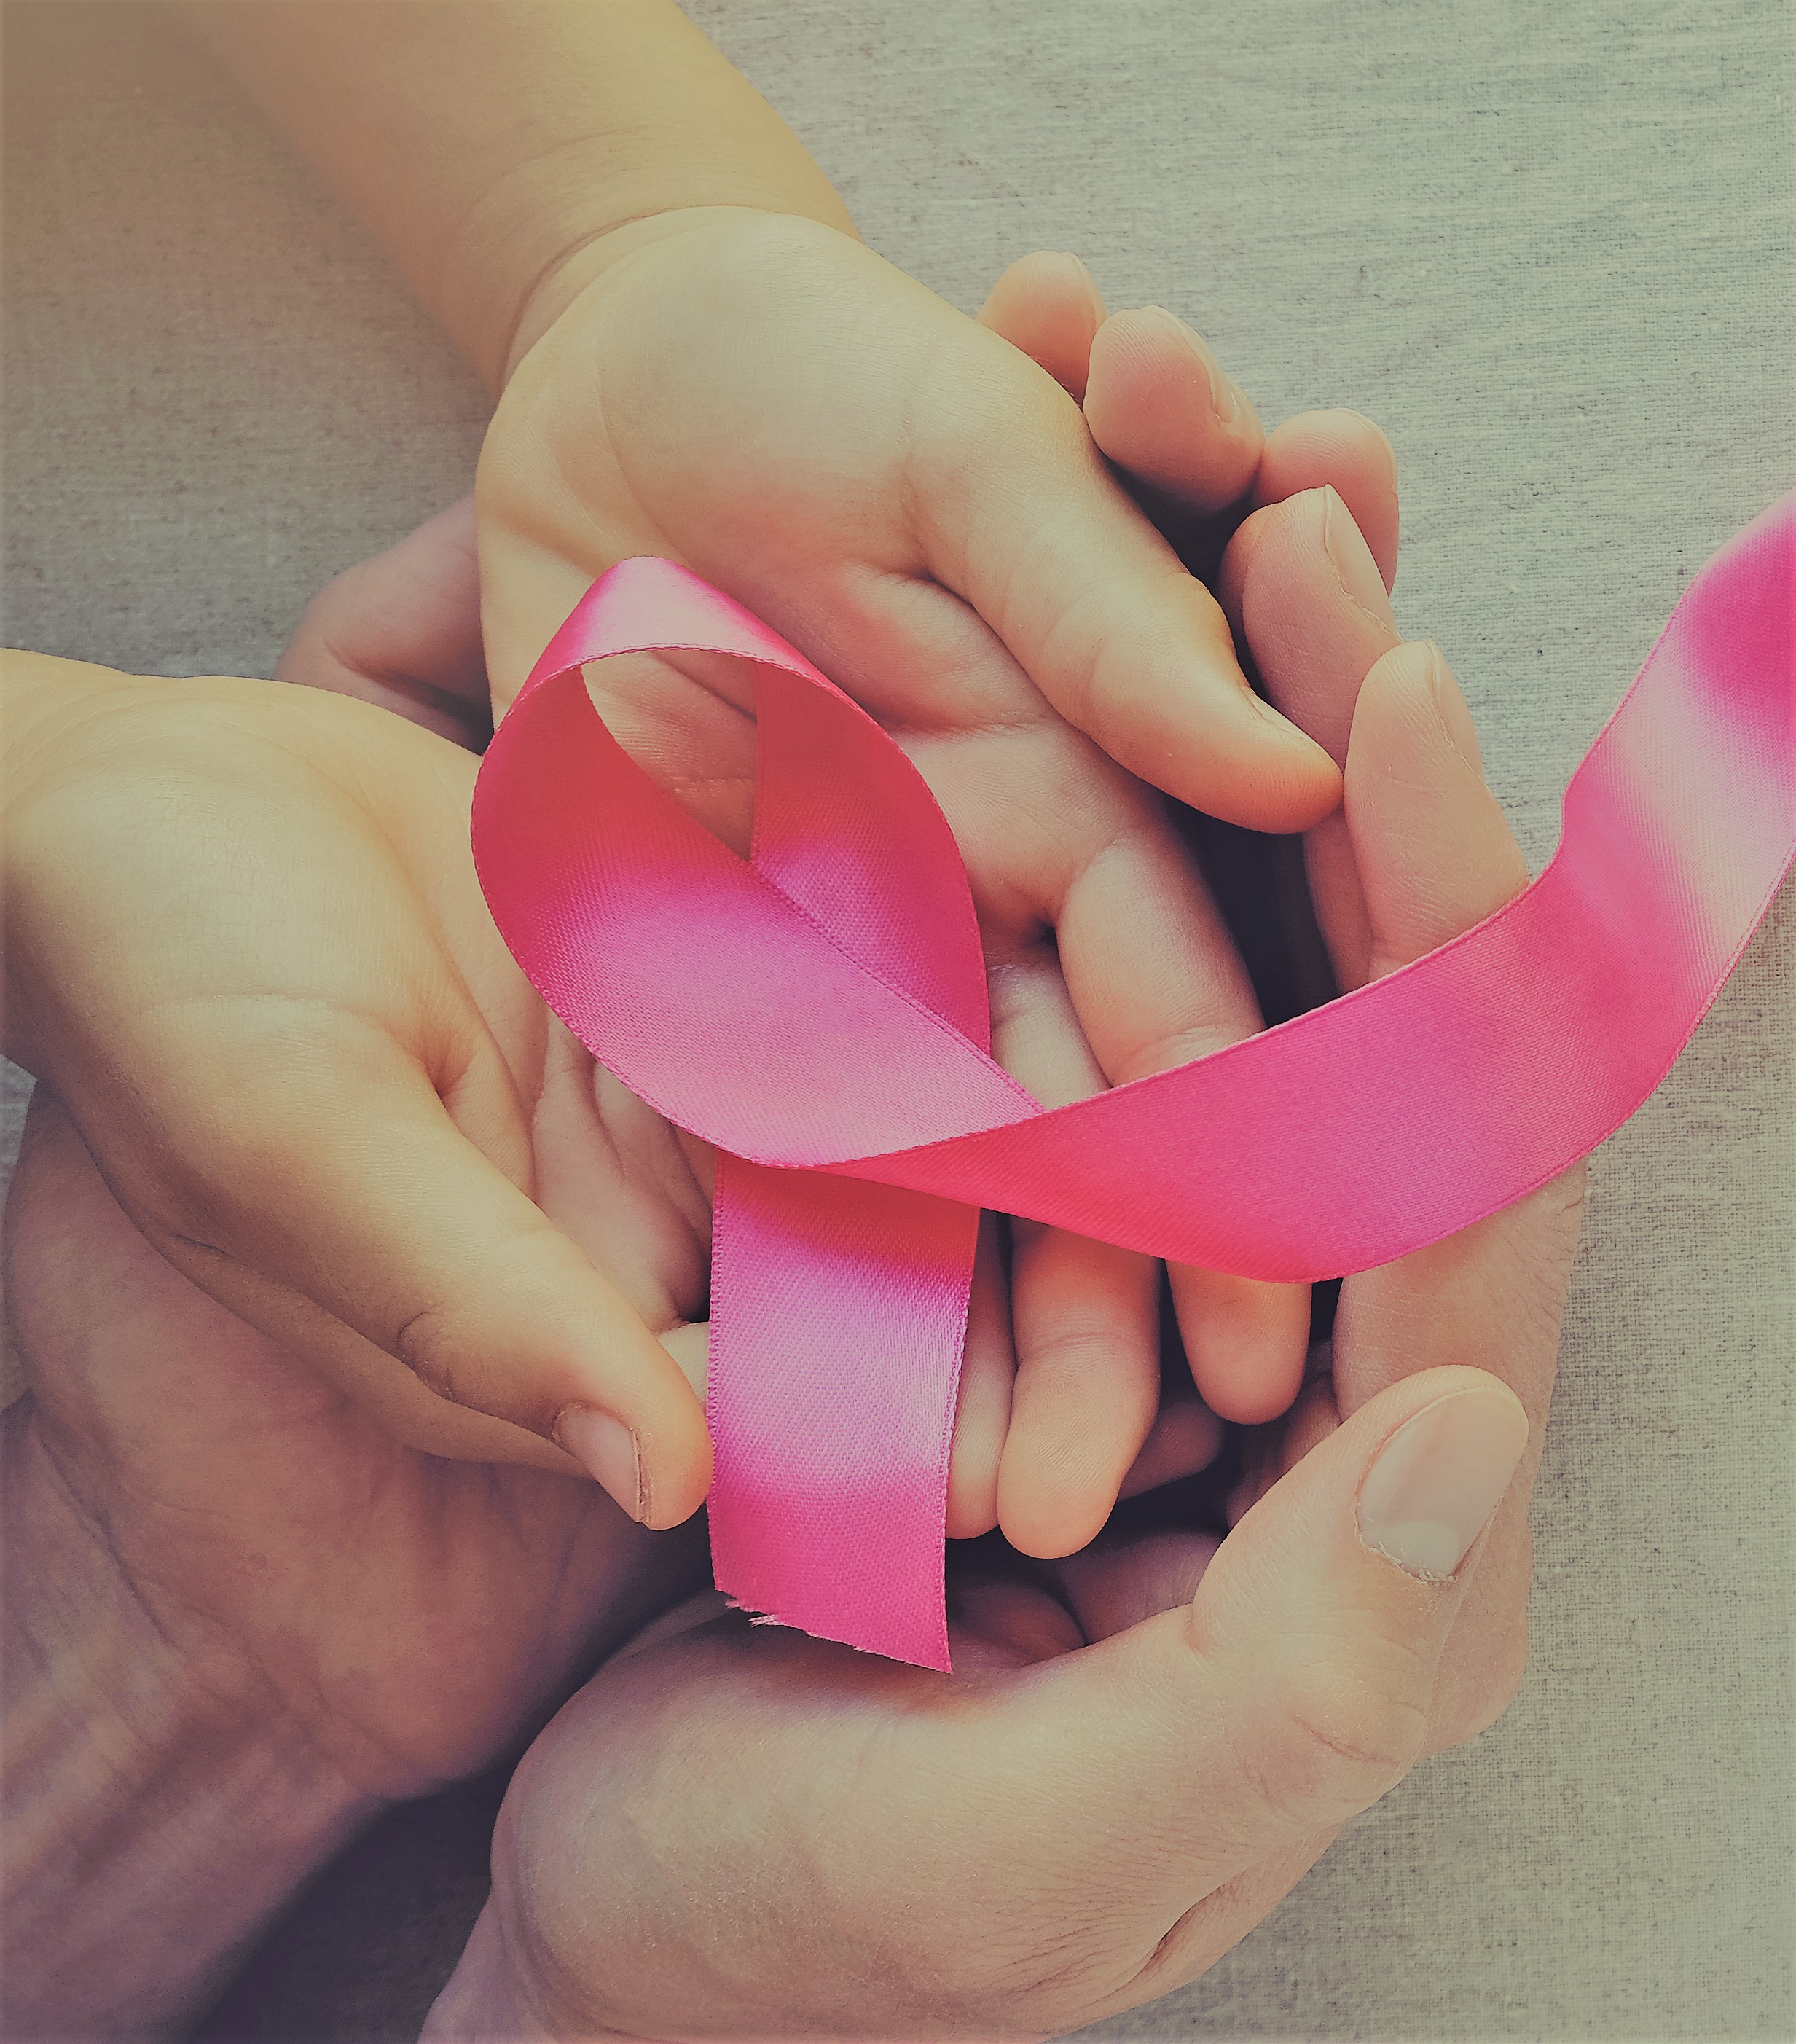 Providing Care and Support in the Battle Against Breast Cancer